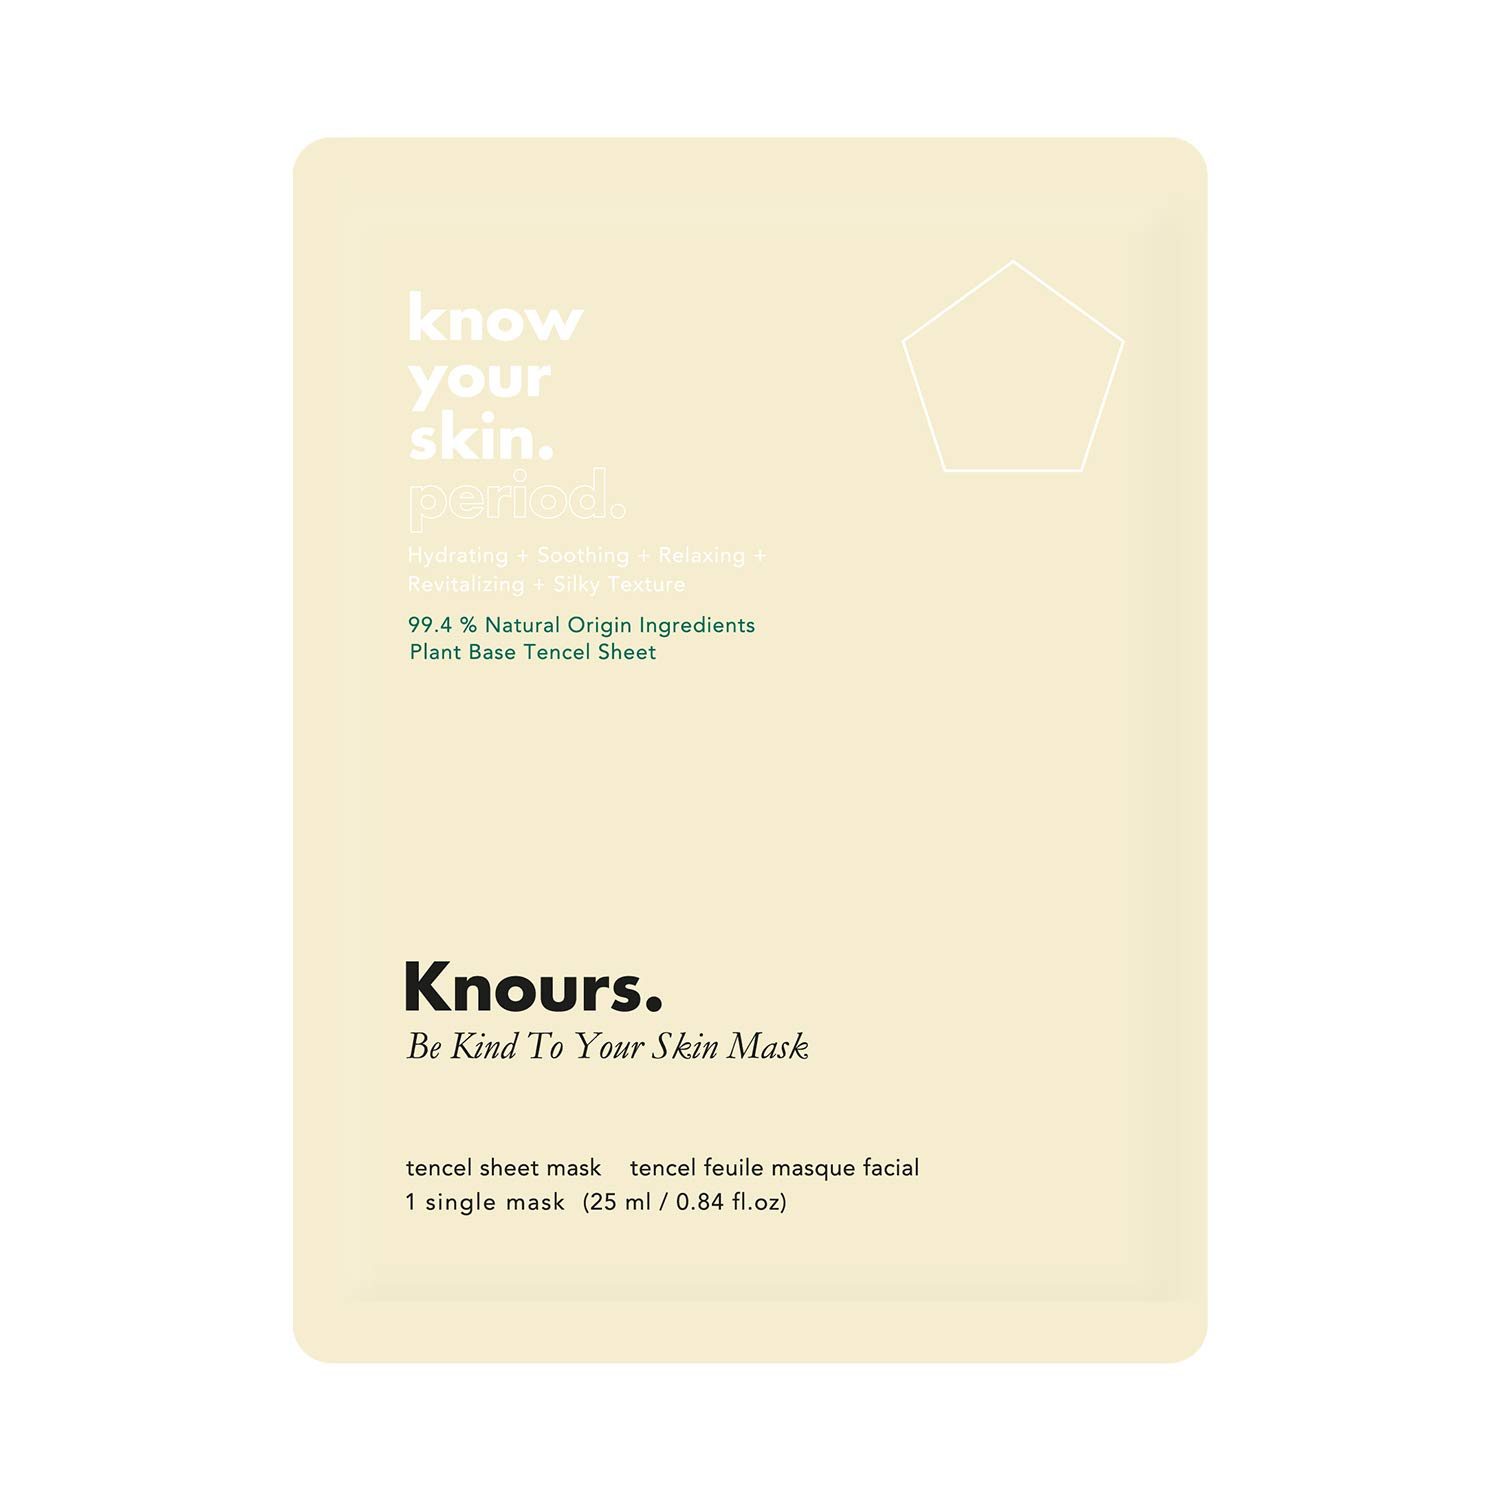 Knours. Be Kind To Your Skin Mask (1ct) | 99% Natural Ingredients Hydrating + Soothing + Revitalizing + Relaxing Effect Facial Nourishing Sheet Mask (EWG Verified Clean Beauty, Cruelty Free, Vegan)